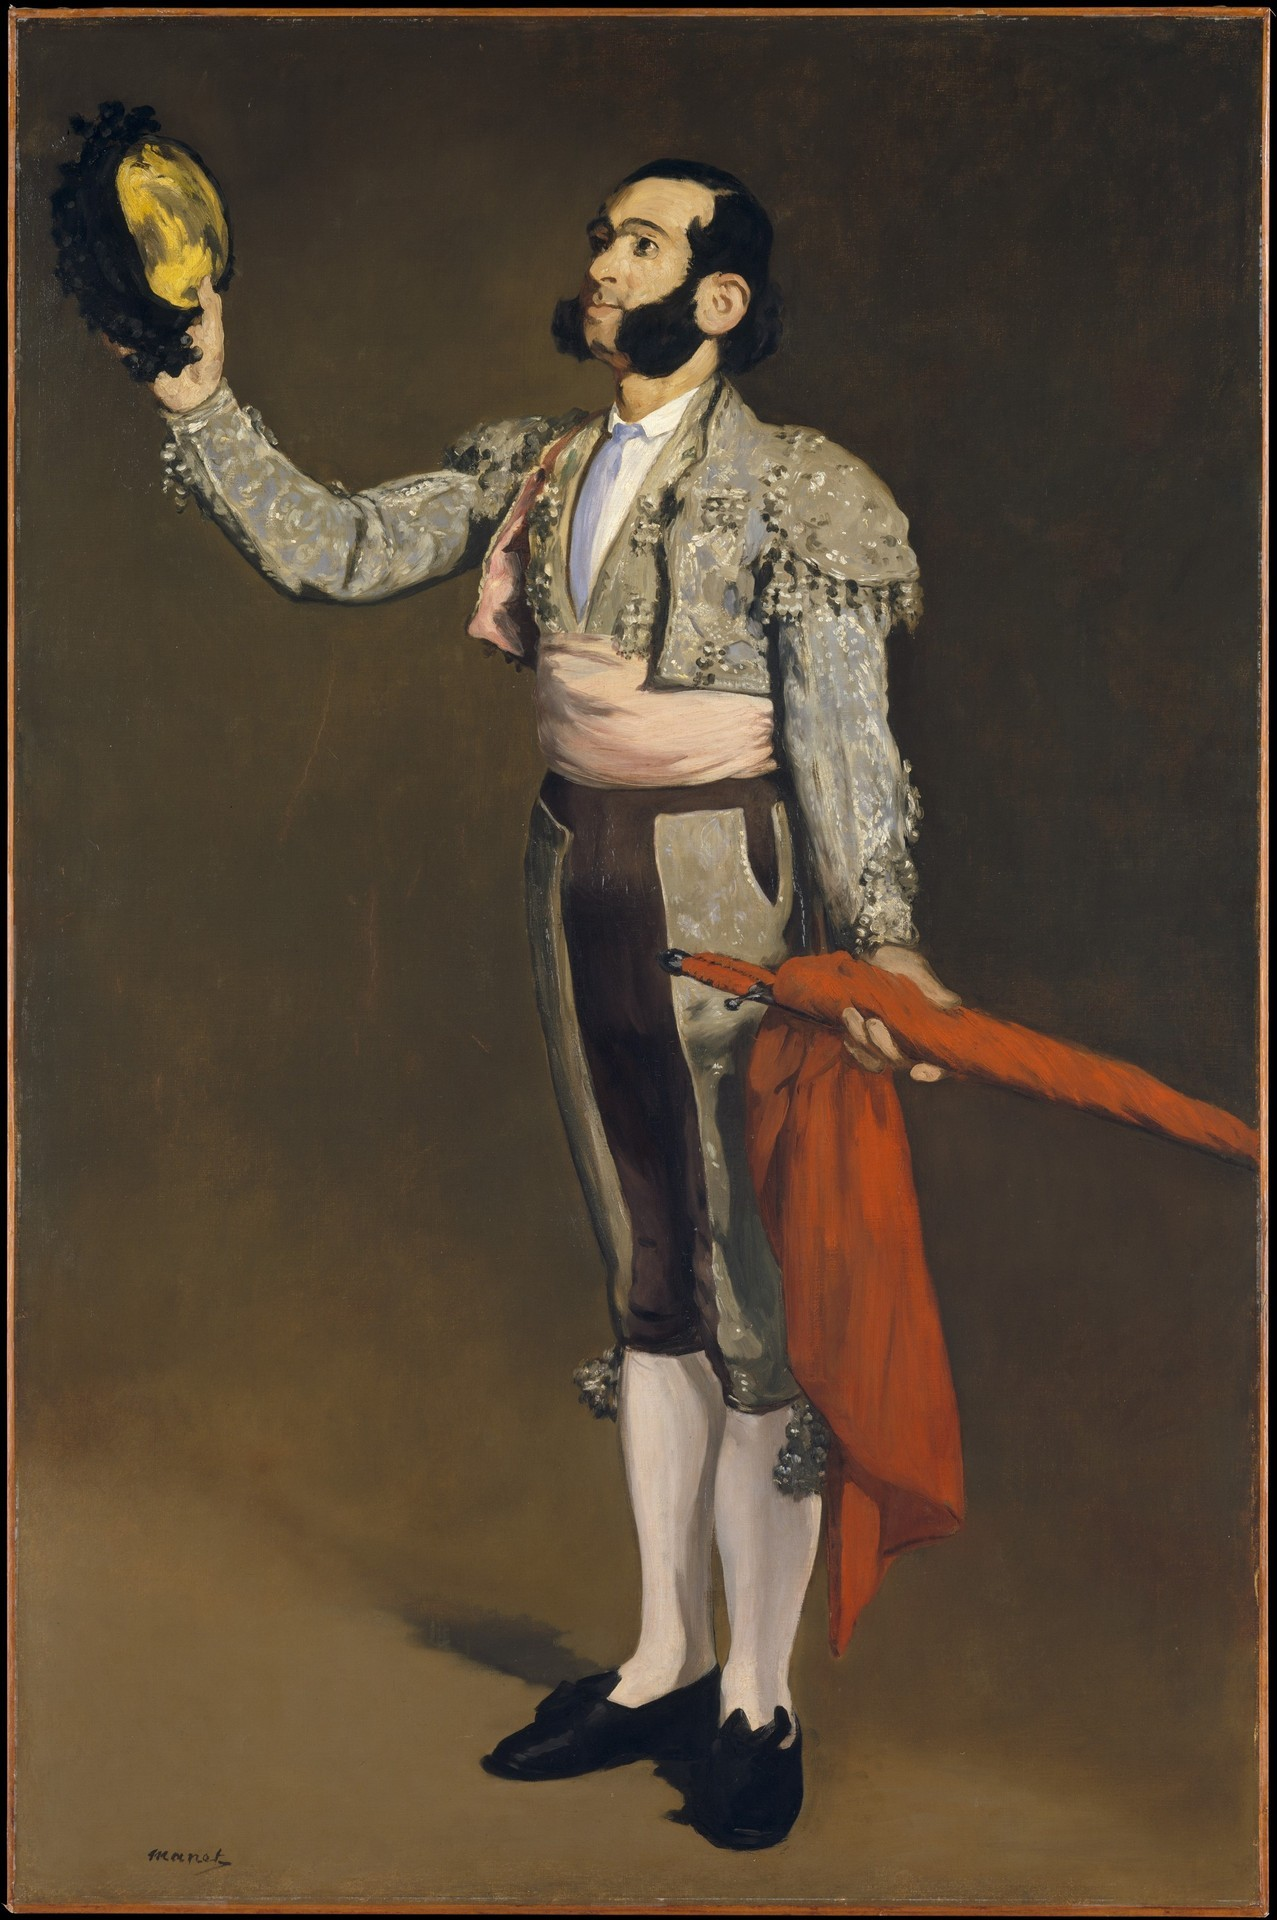 Édouard  Manet - A Matador, 1866-67. Oil on canvas